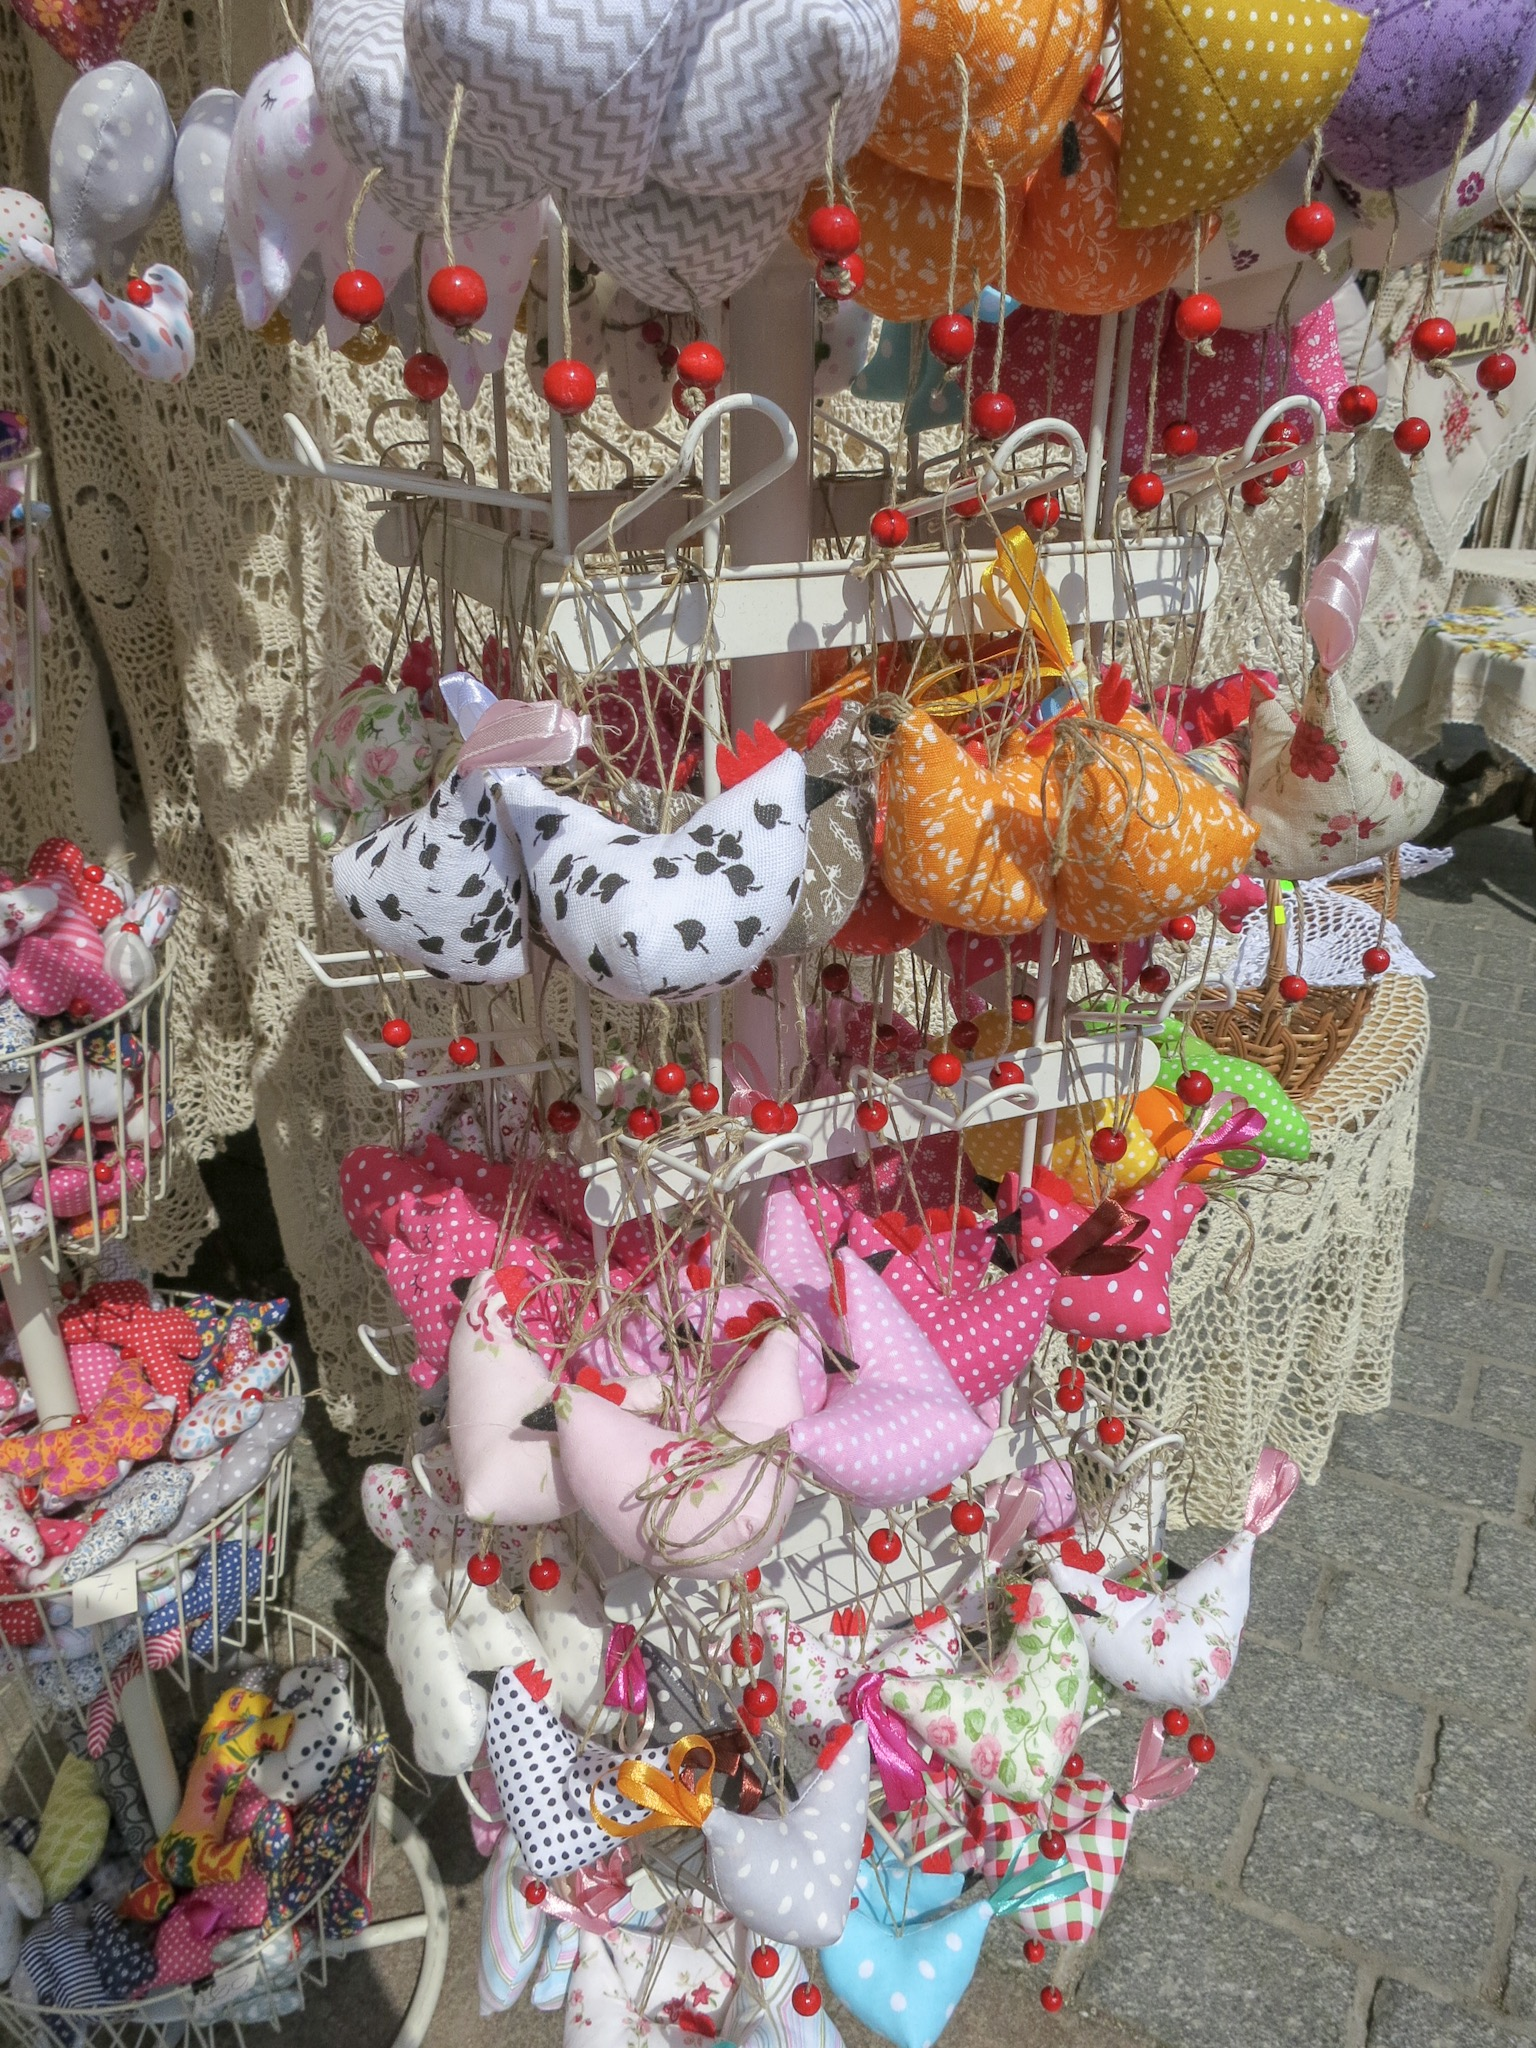 Spring handcrafts at the Krakow Easter Market